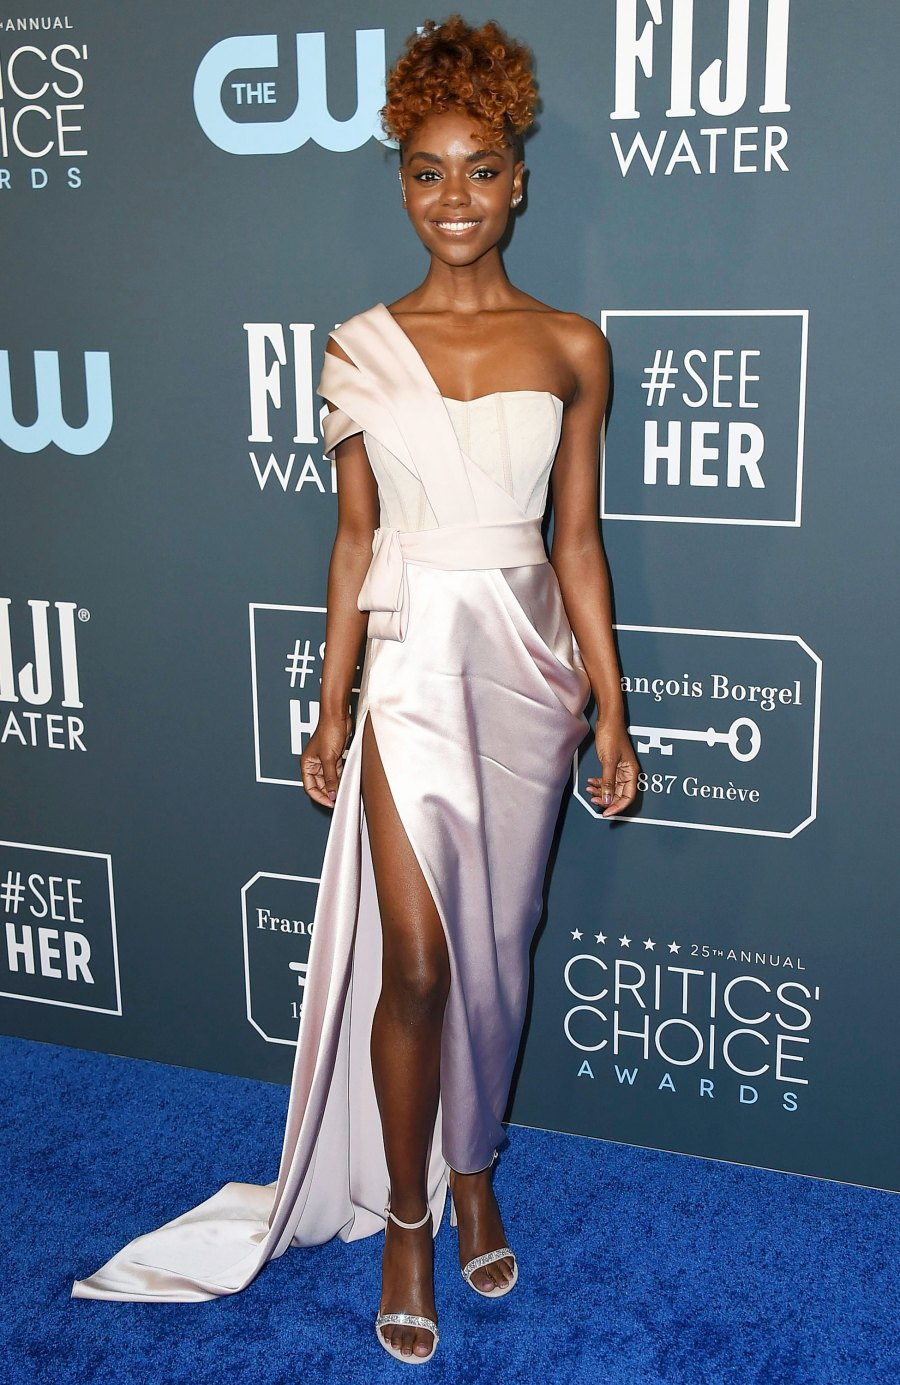 Critic's Choice Awards 2020 - Ashleigh Murray